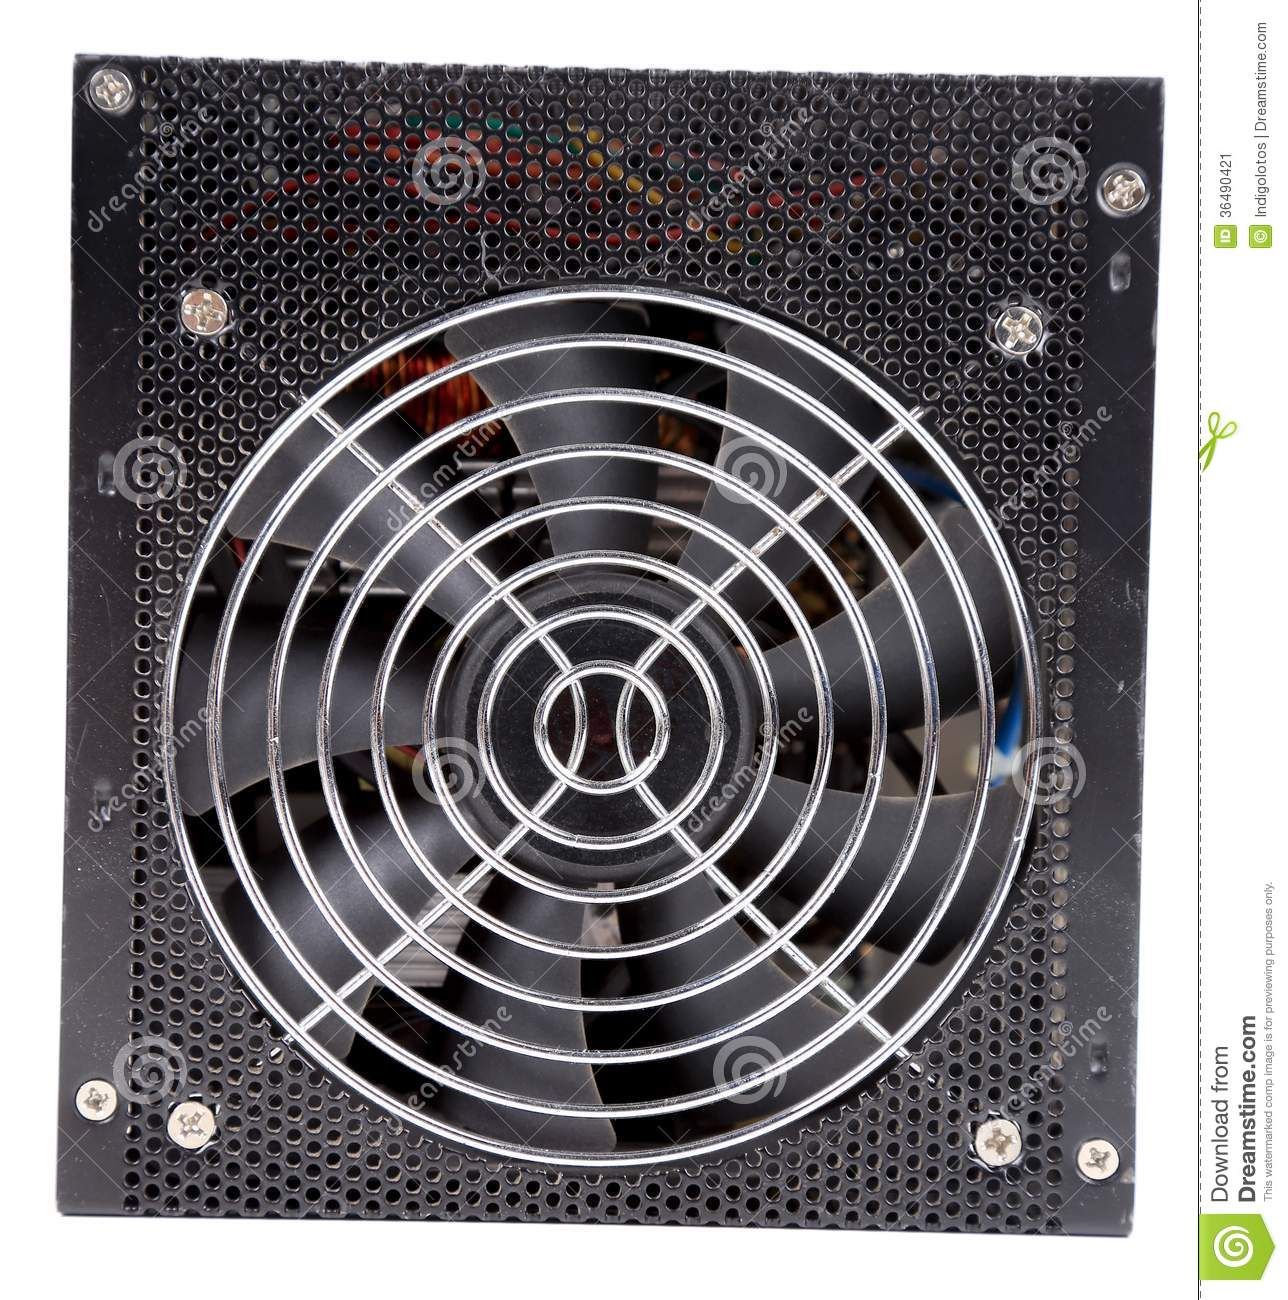 Cooler For Power Source Of Computer. Stock Image - Image of colour ...